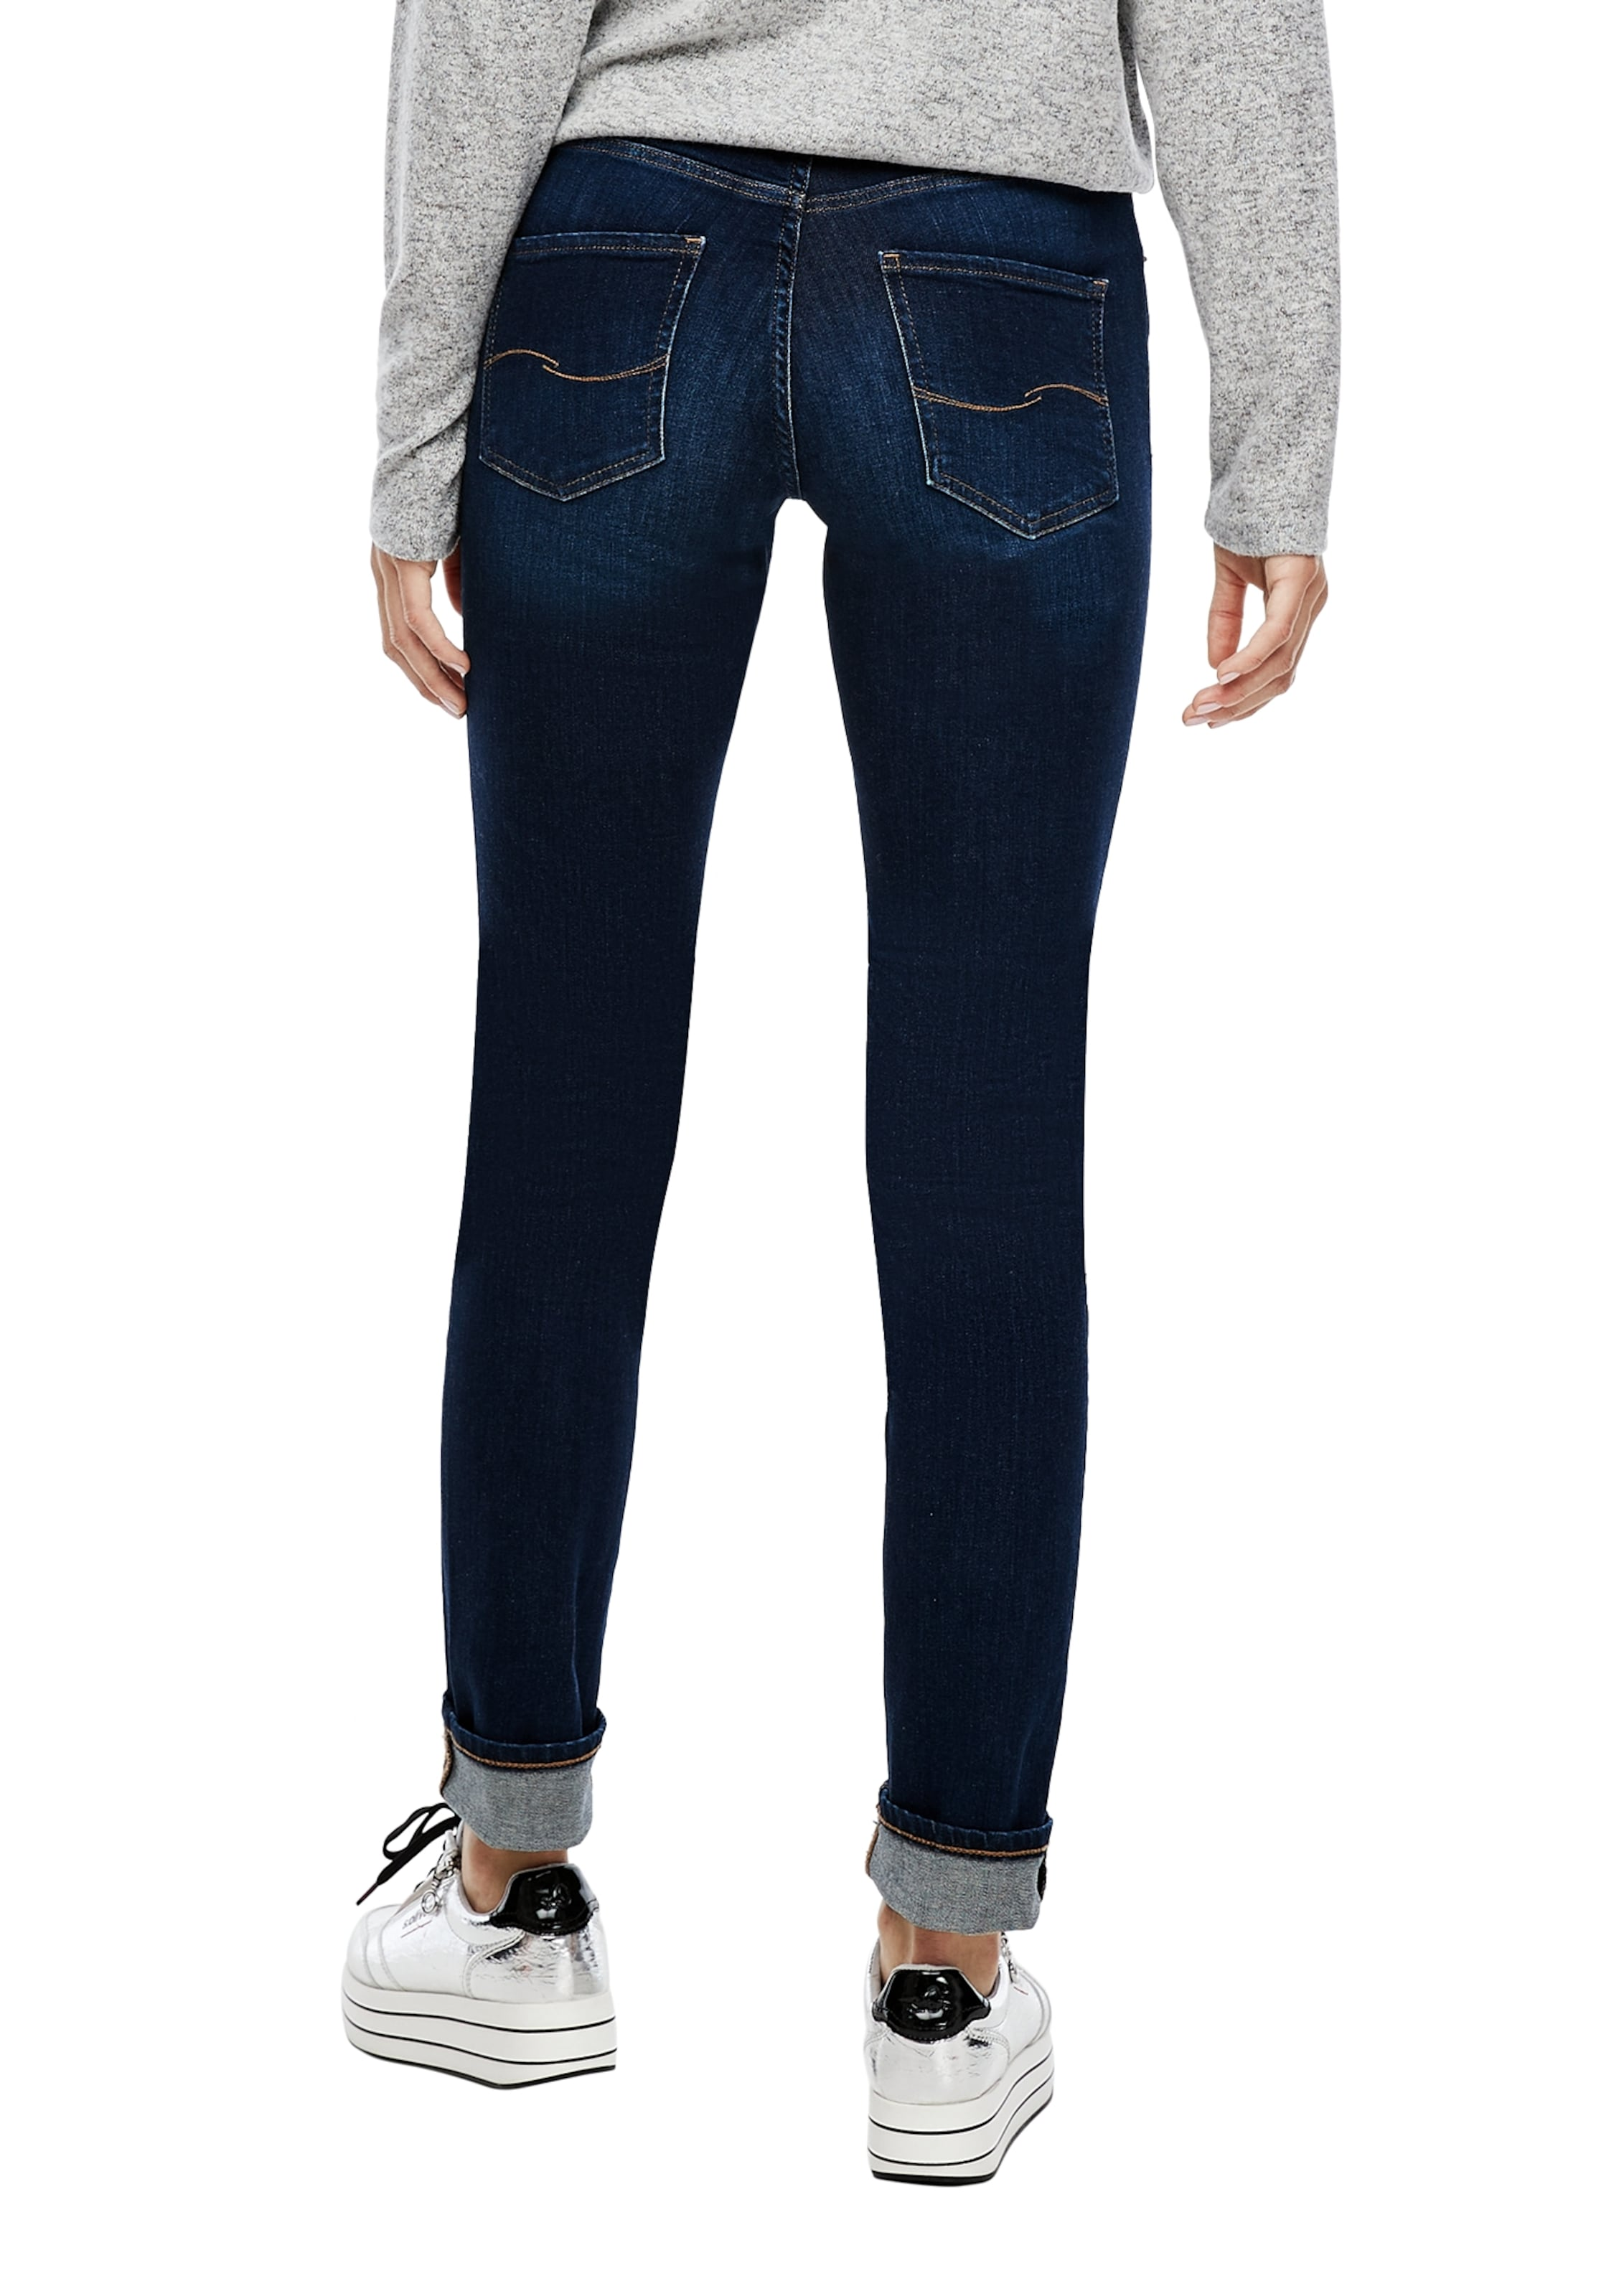 Q/S designed by Jeans in blue denim